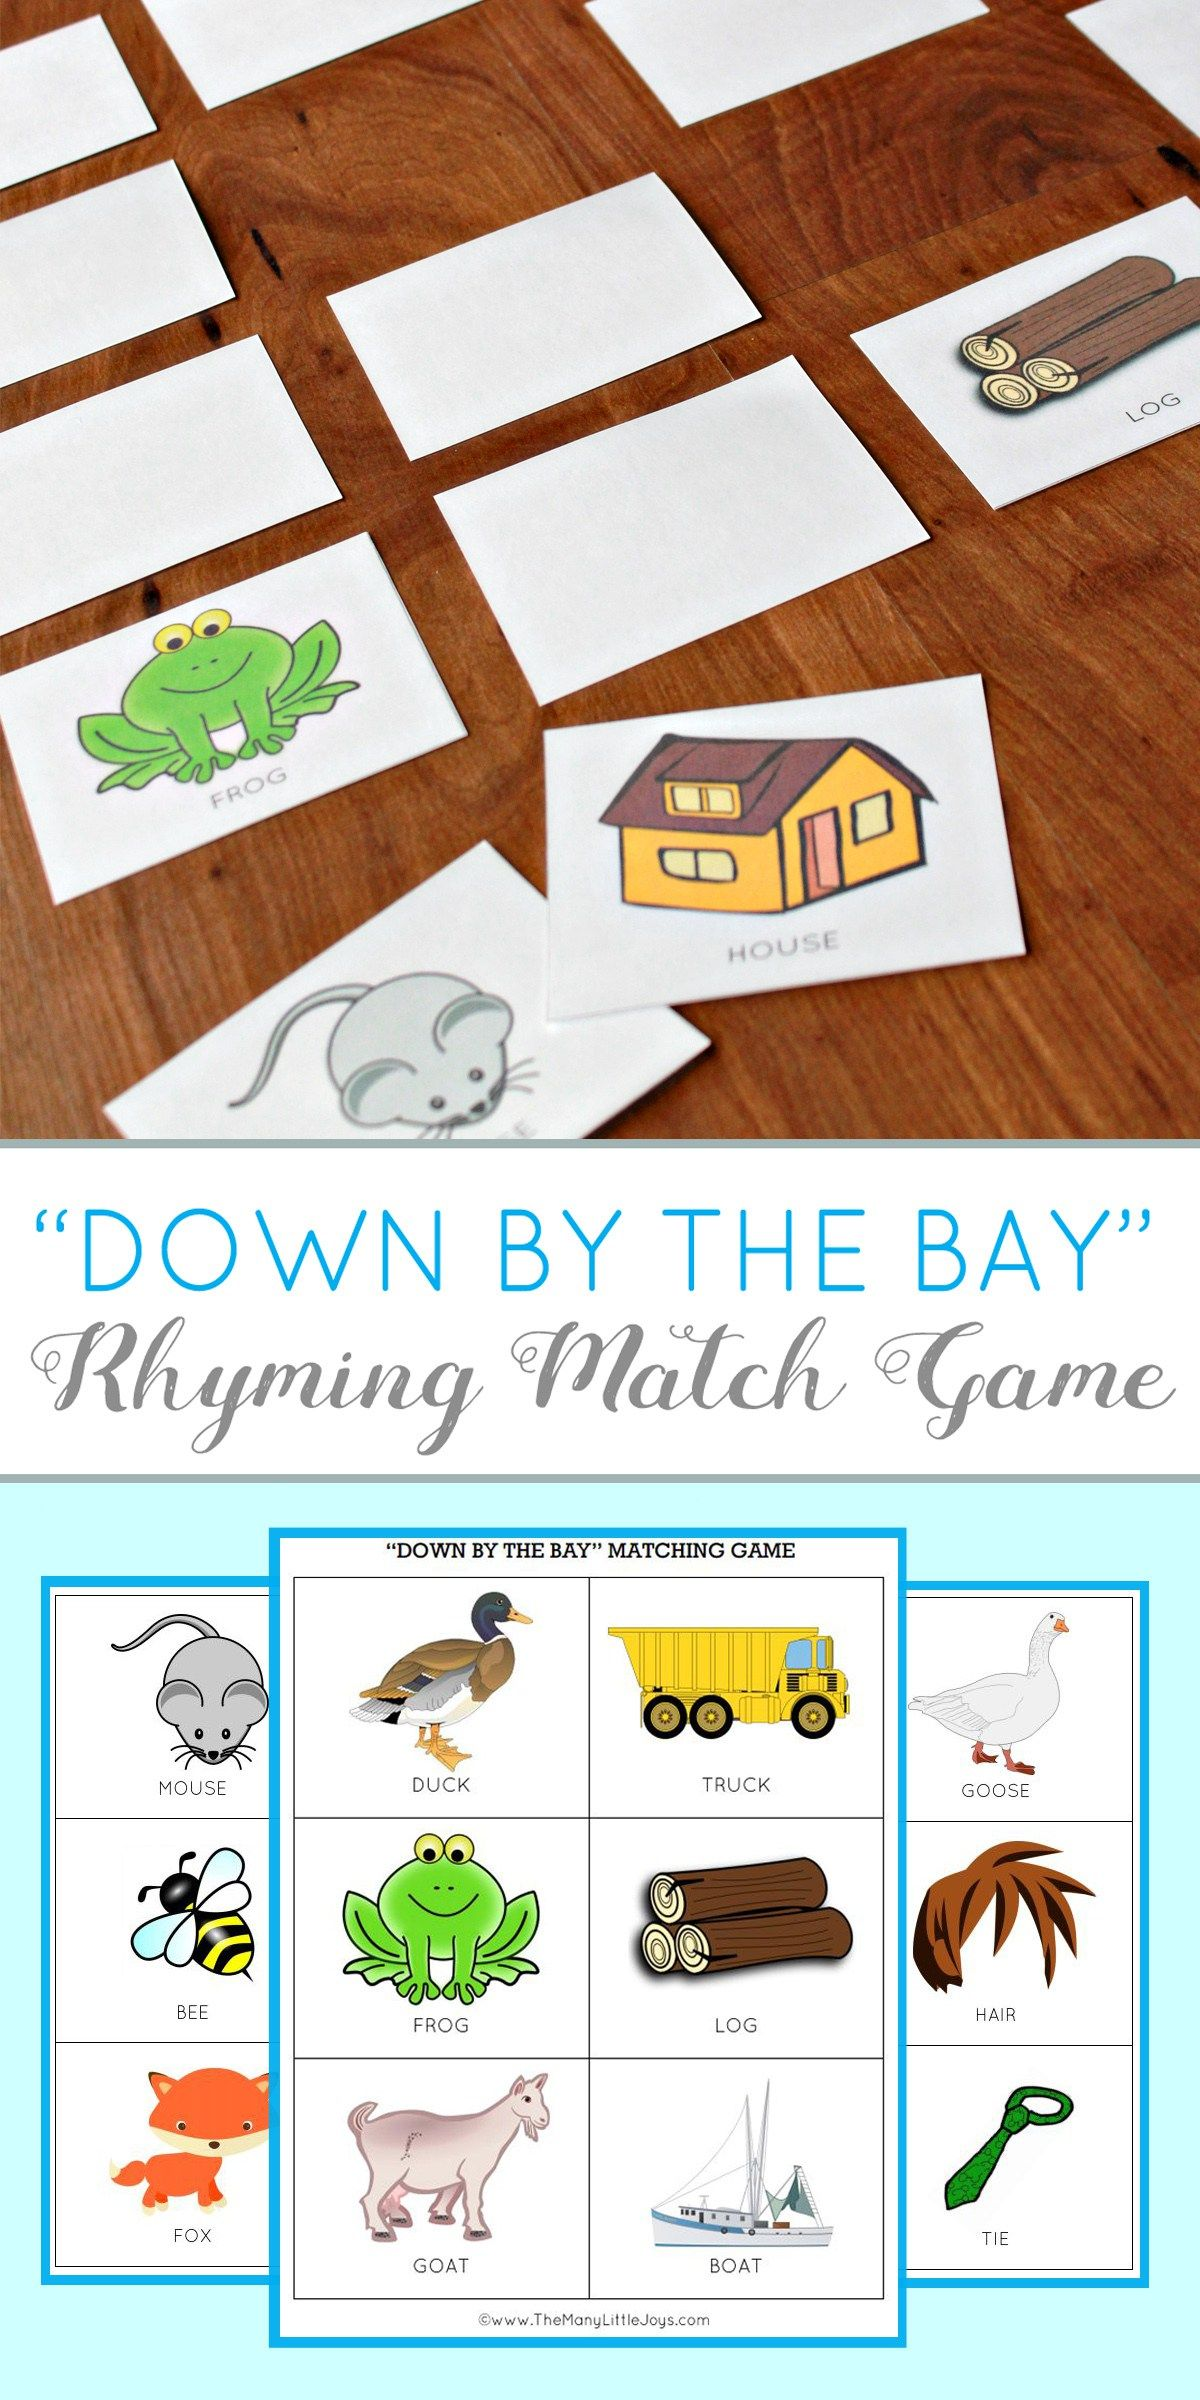 Teaching Kids To Rhyme Rhyming Match Game Free Printable